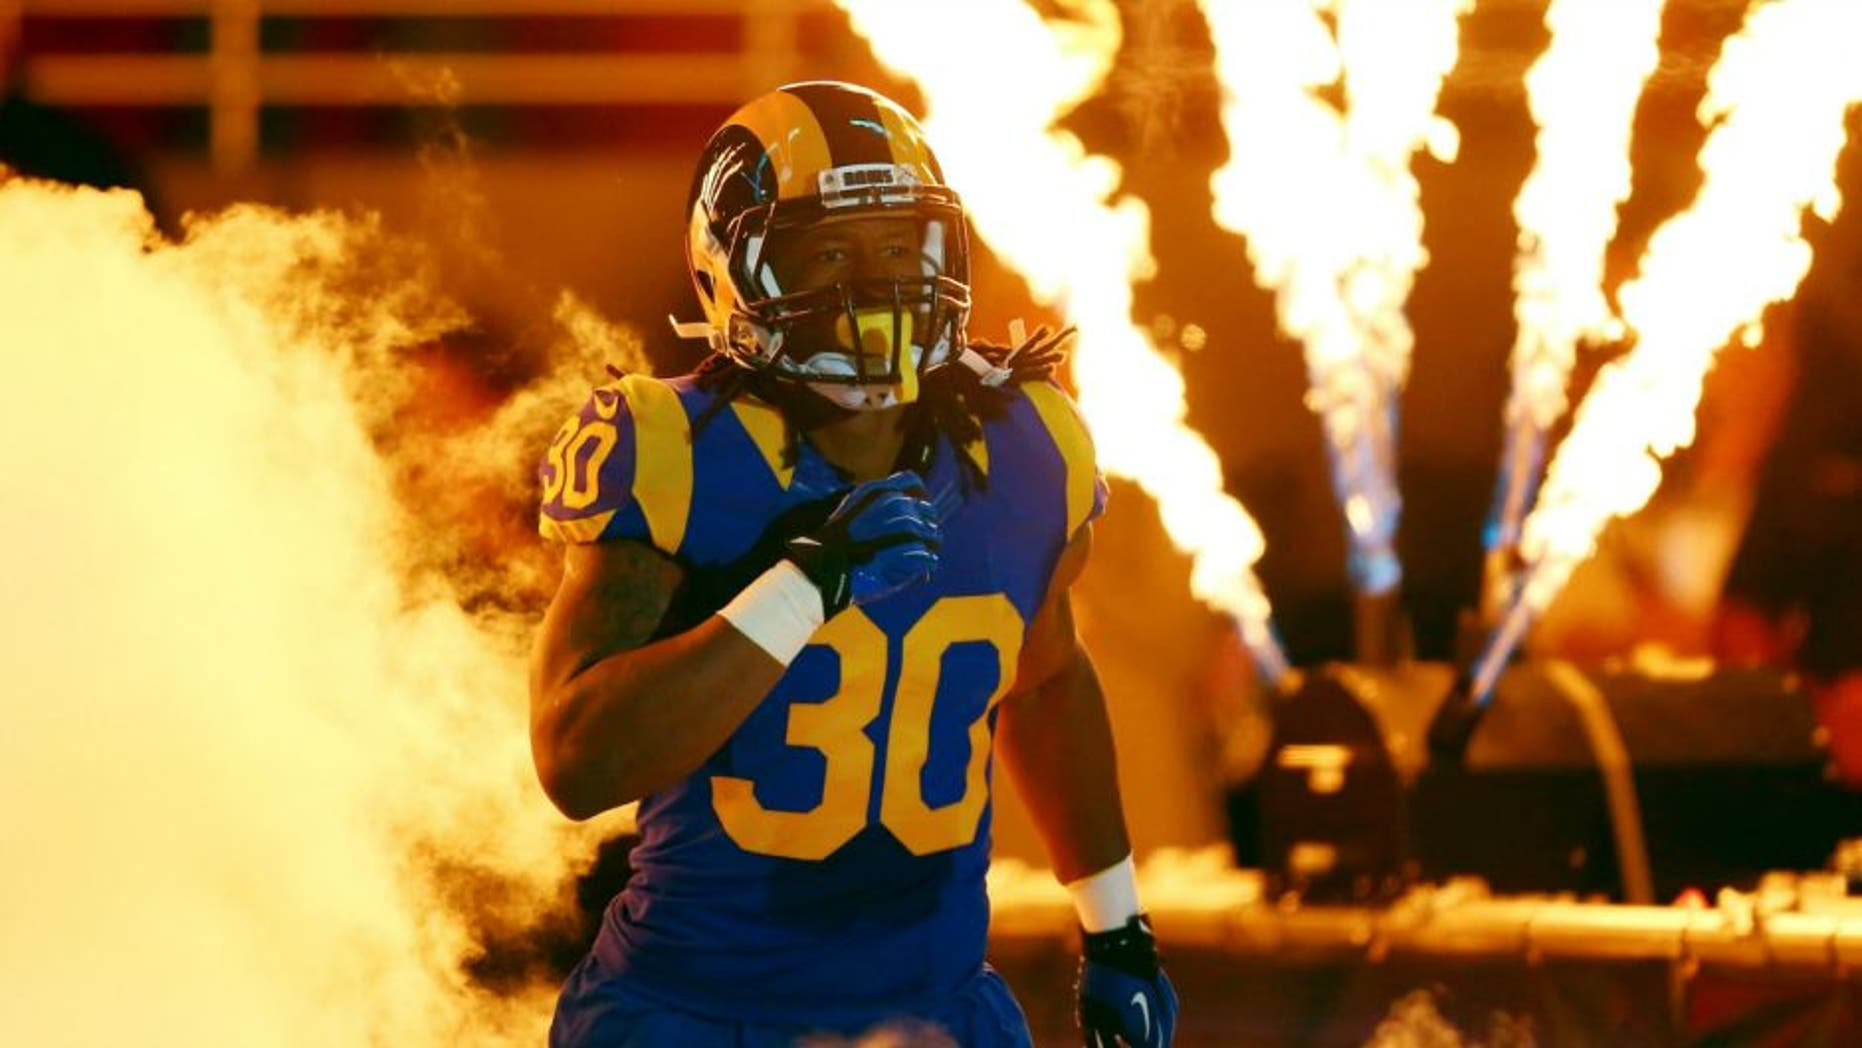 ST. LOUIS, MO - NOVEMBER 1: Todd Gurley #30 of the St. Louis Rams takes to the field during introductions before a game against the San Francisco 49ers at the Edward Jones Dome on November 1, 2015 in St. Louis, Missouri. (Photo by Dilip Vishwanat/Getty Images)